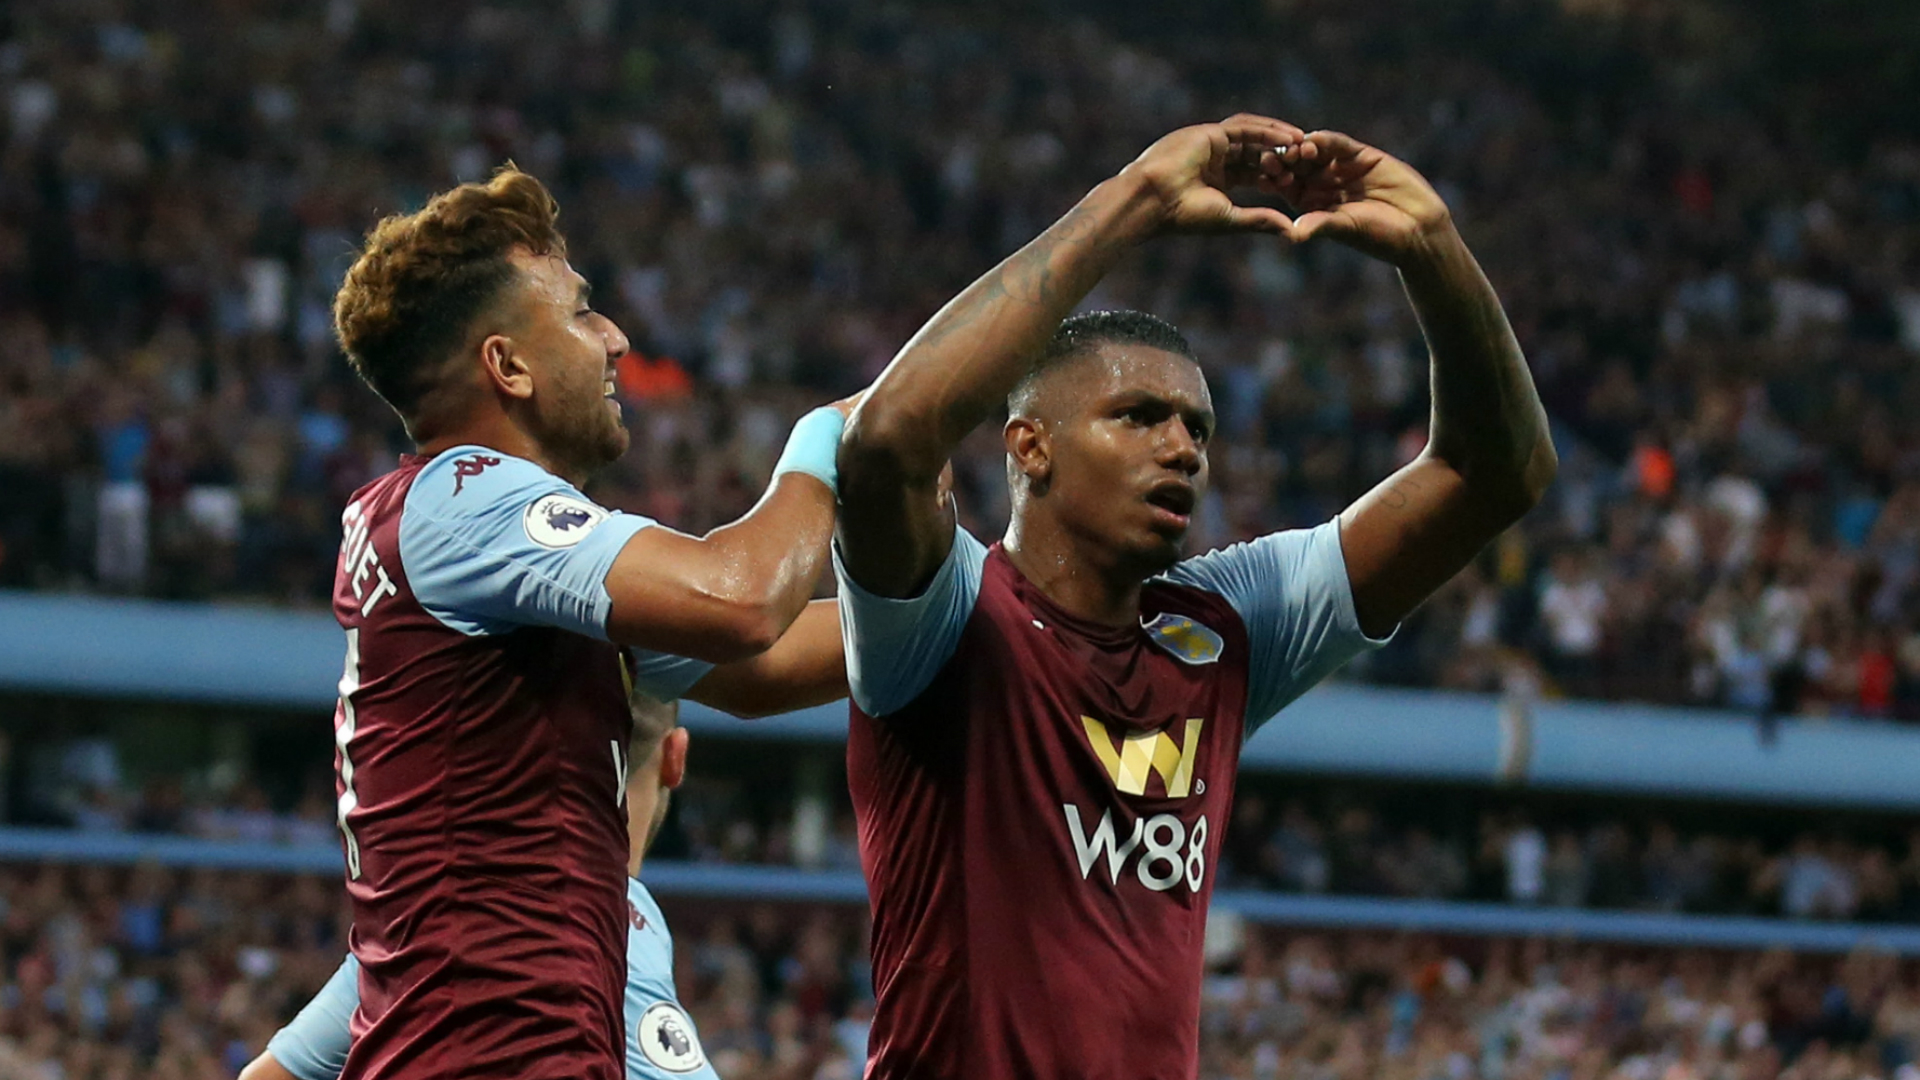 Aston Villa 2-0 Everton: Wesley stars as Smith's men earn first win